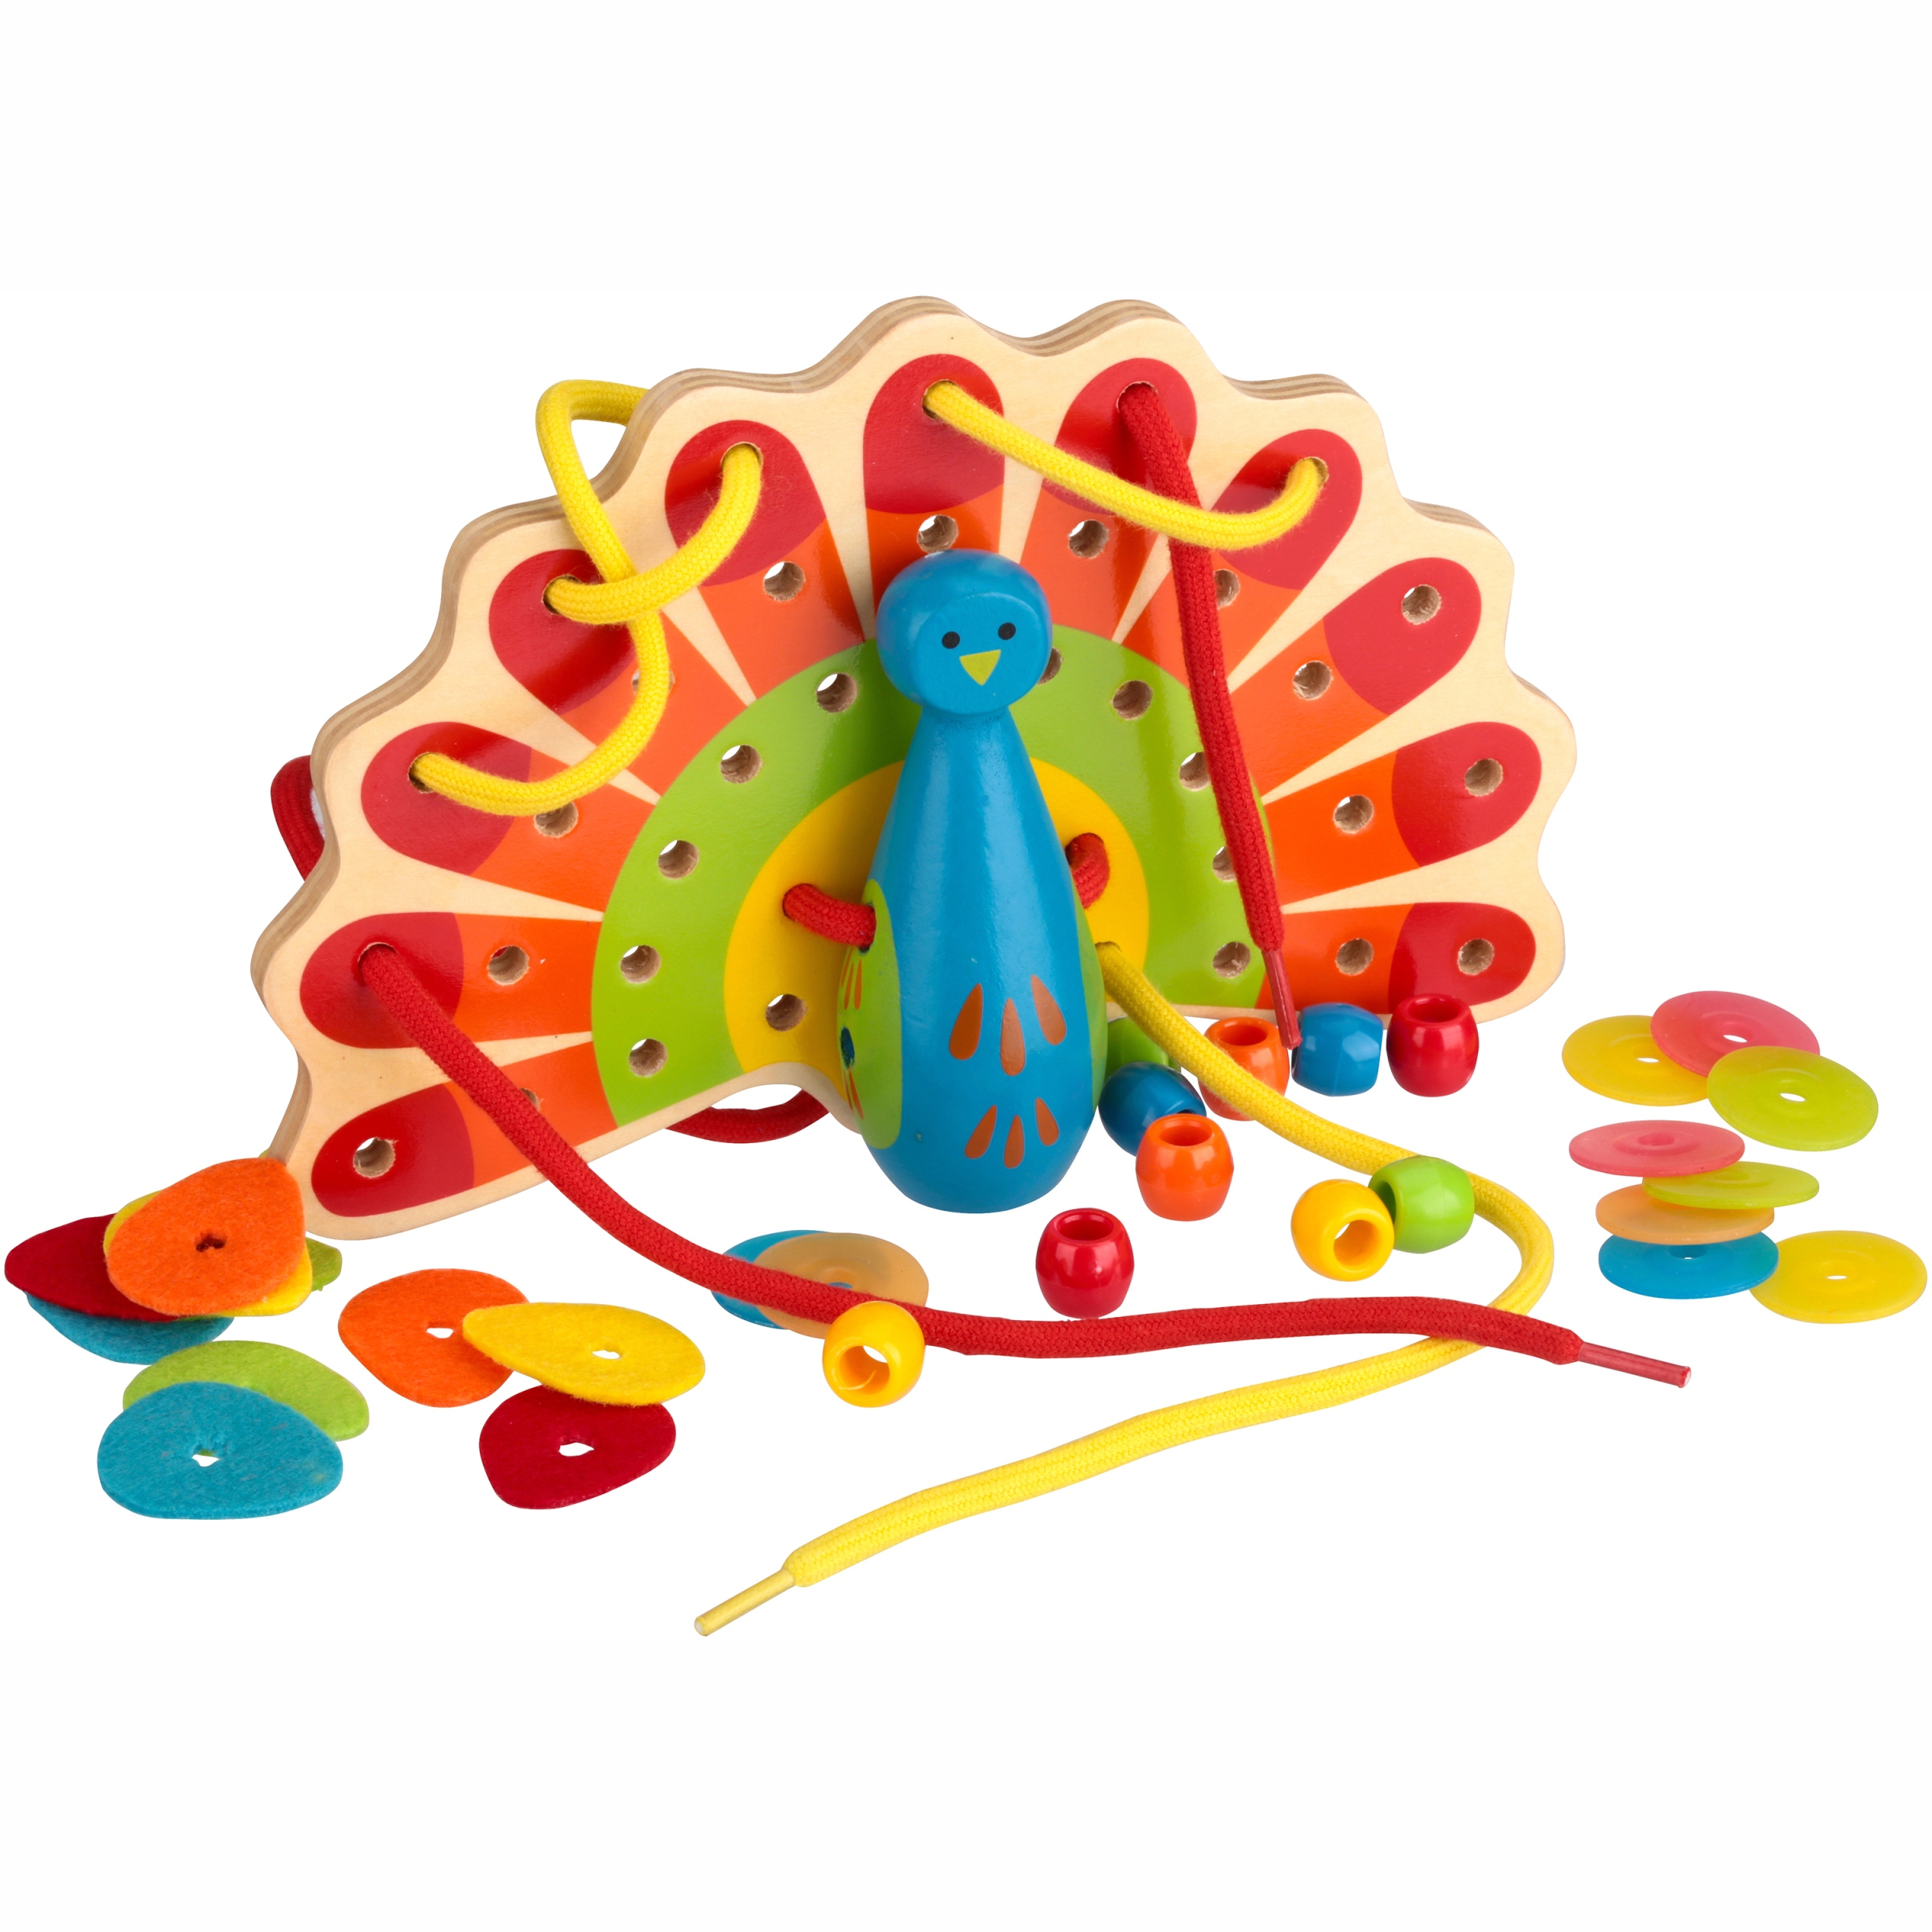 Hape Lacing Peacock Toy 34 pc Box